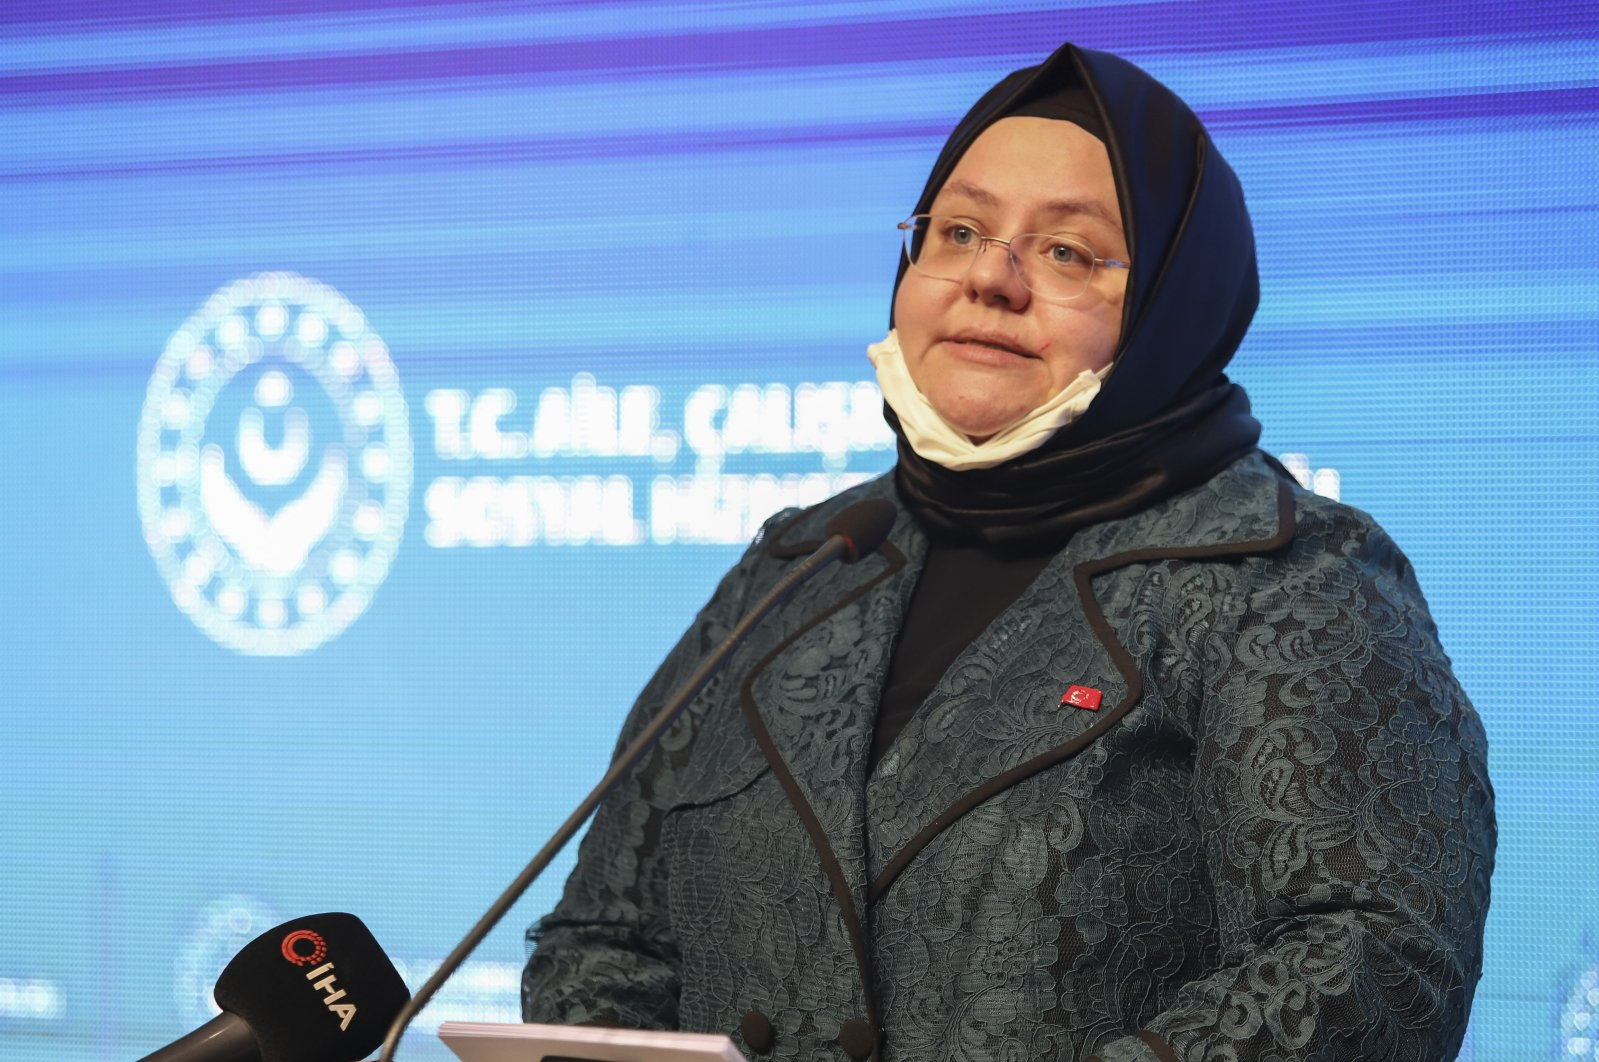 Family, Labor and Social Services Minister Zehra Zümrüt Selçuk speaks at an event in the capital Ankara, Turkey, Oct. 6, 2020. (İHA Photo)